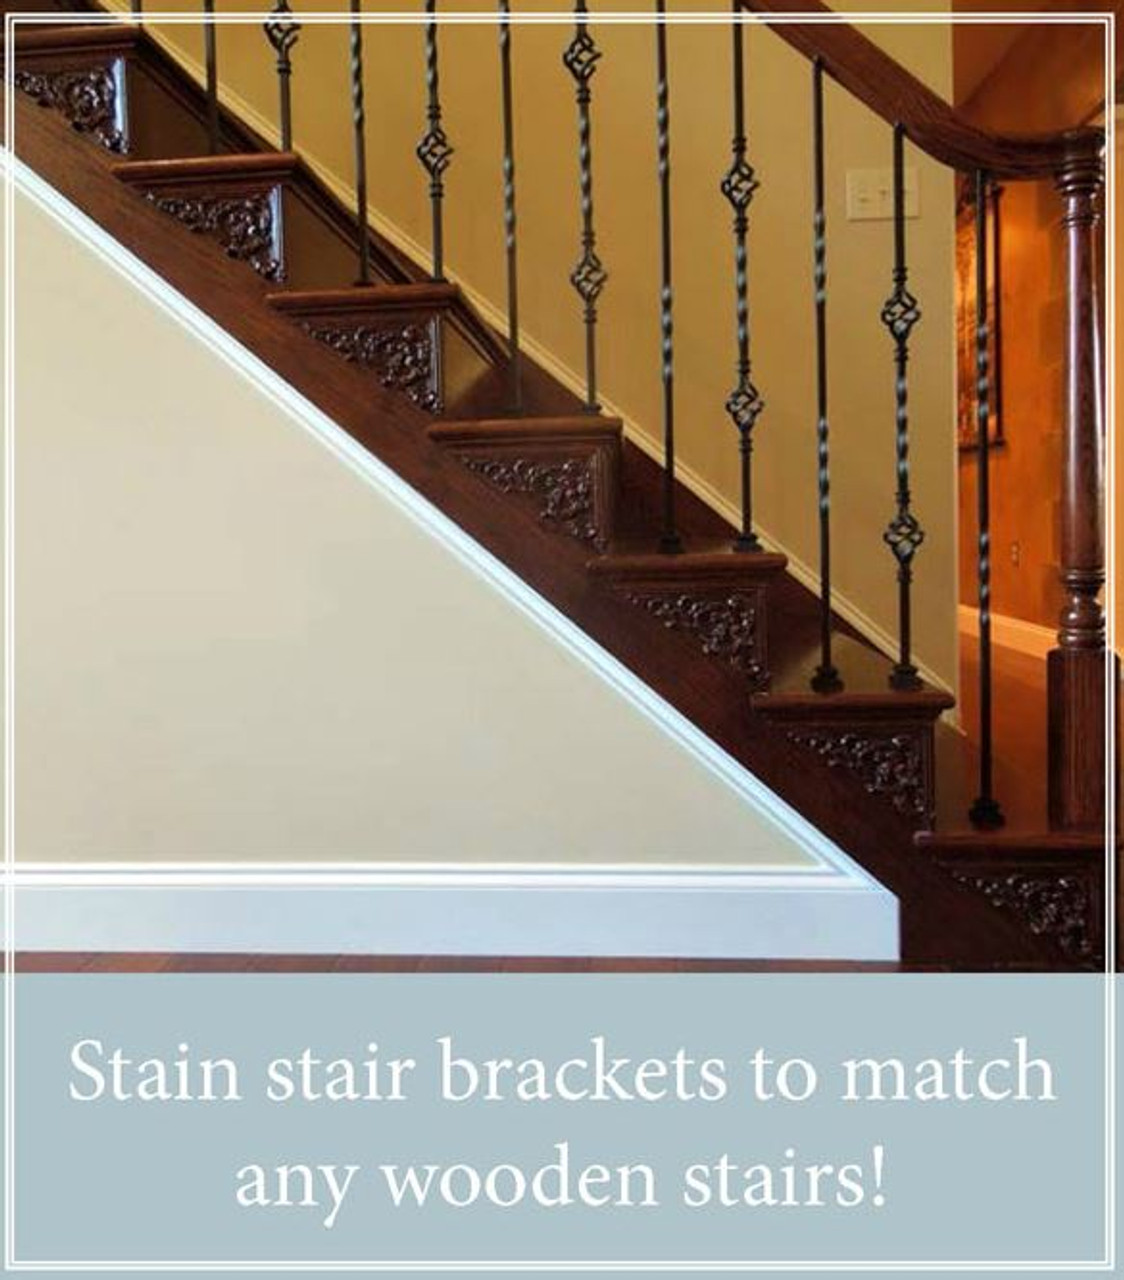 Stair Brackets can be stained to match installed hardwoods